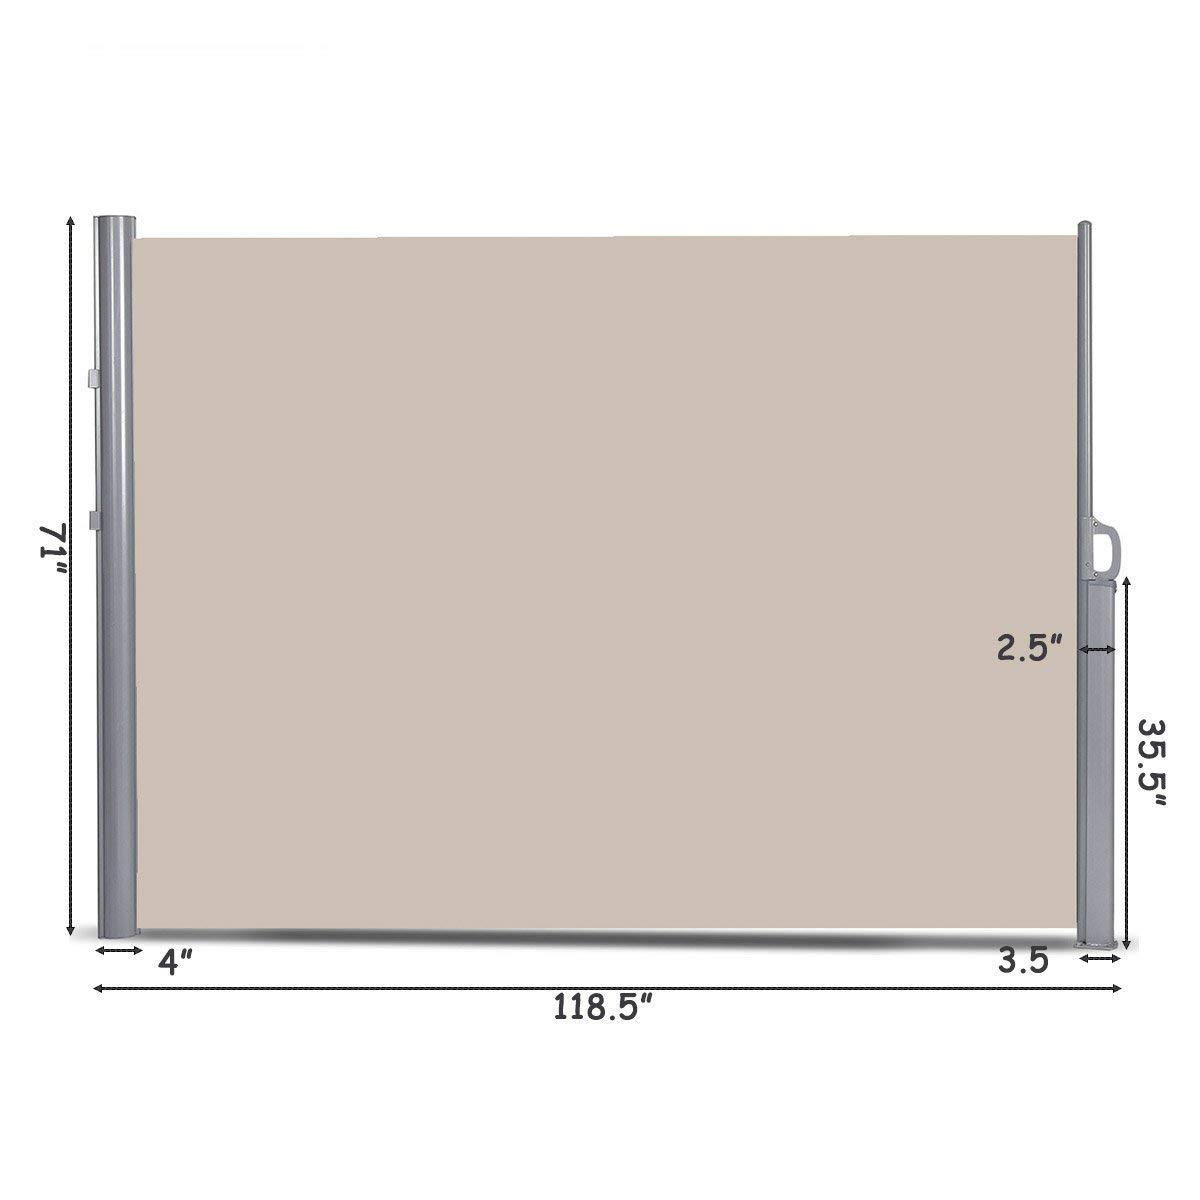 Tangkula Outdoor Patio Retractable Folding Side Screen Awning Waterproof Sun Shade Wind Screen Privacy Divider (118.5'' x 71'', Beige) by Tangkula (Image #5)